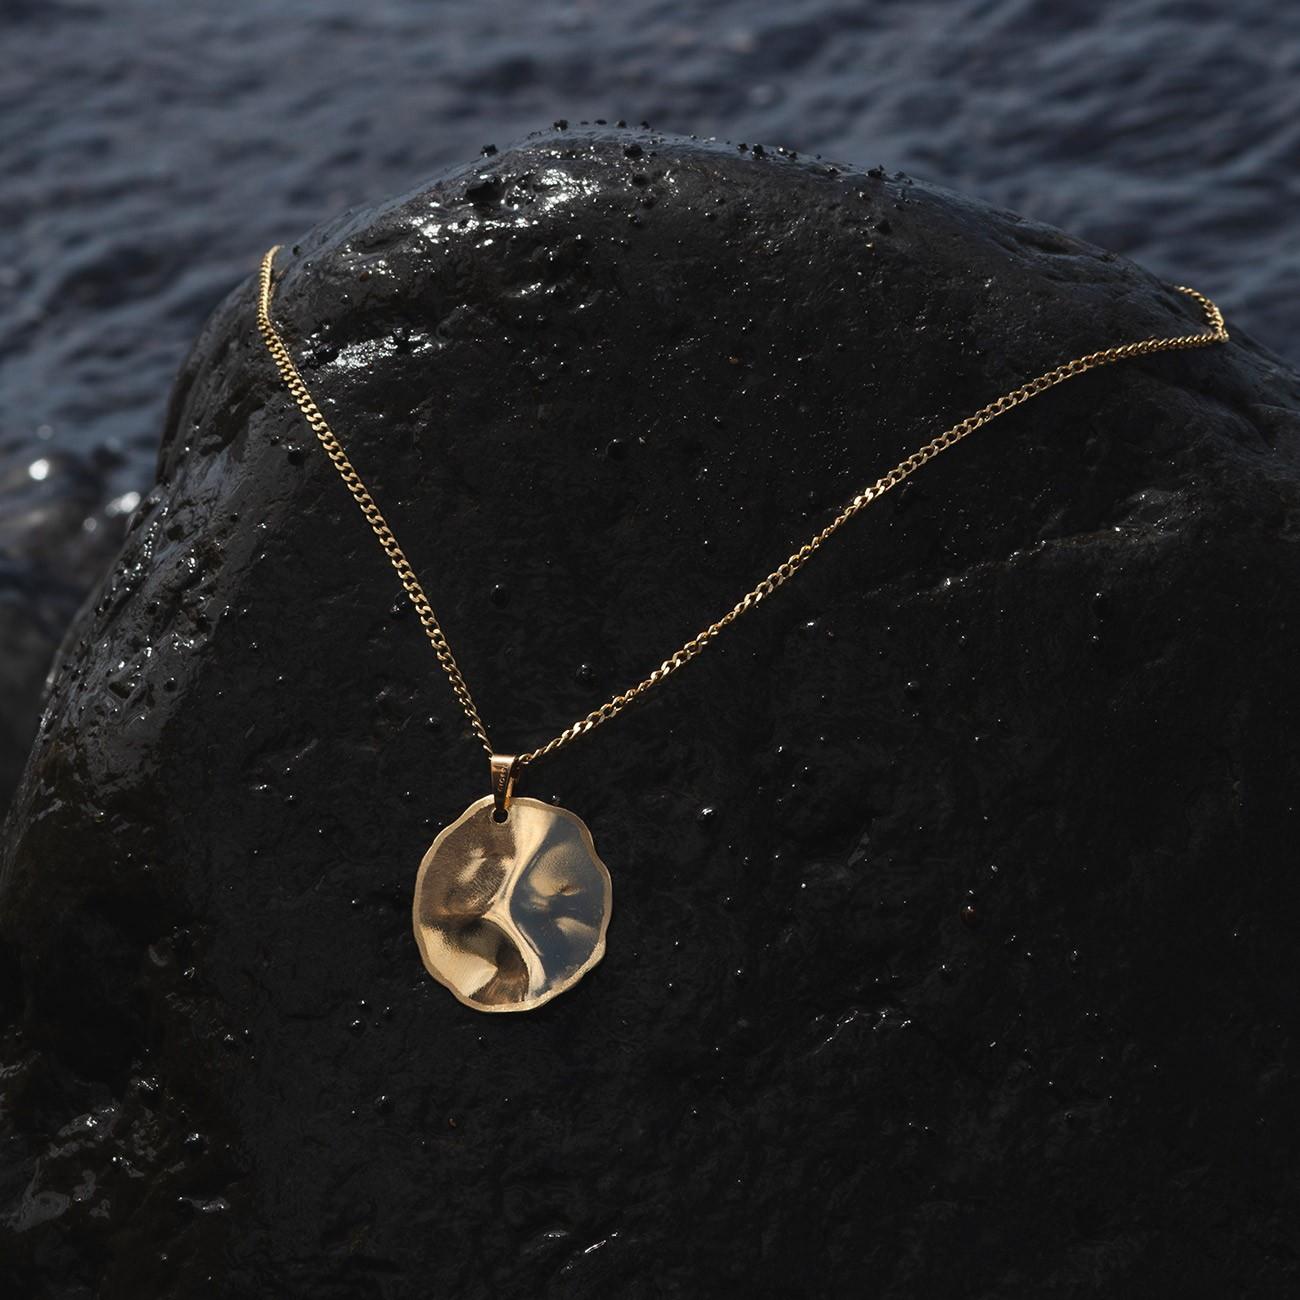 Circle wavy necklace, sterling silver 925